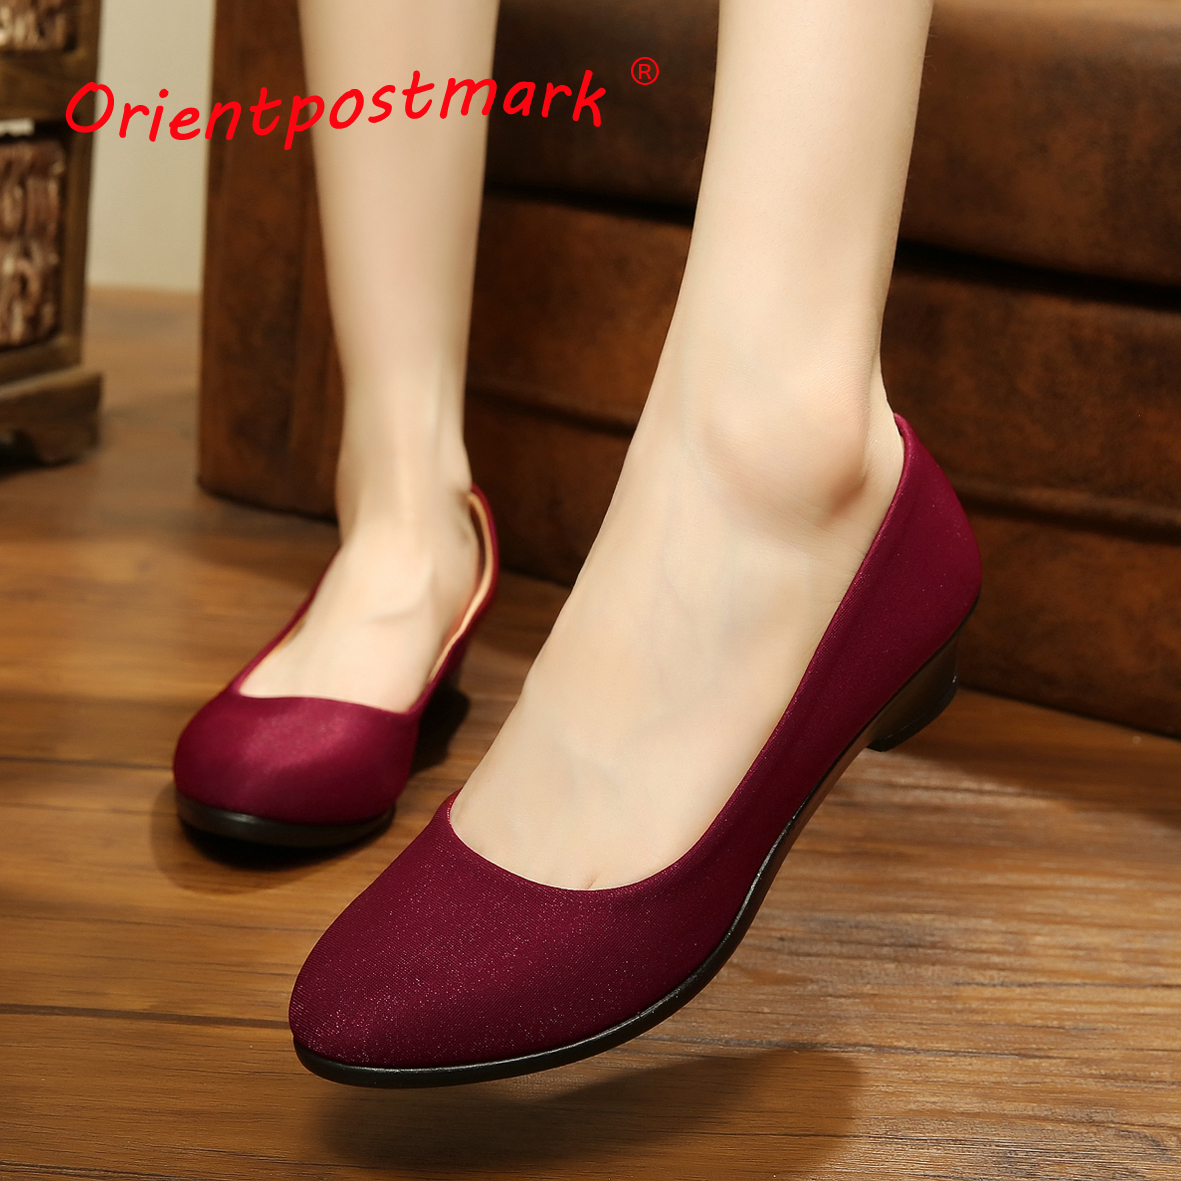 OrientPostMark Women Ballet Flats Shoes Women Shoes Office Cloth Sweet Loafers Women's Flats Ballet Pregnant Flats Shoes Boat